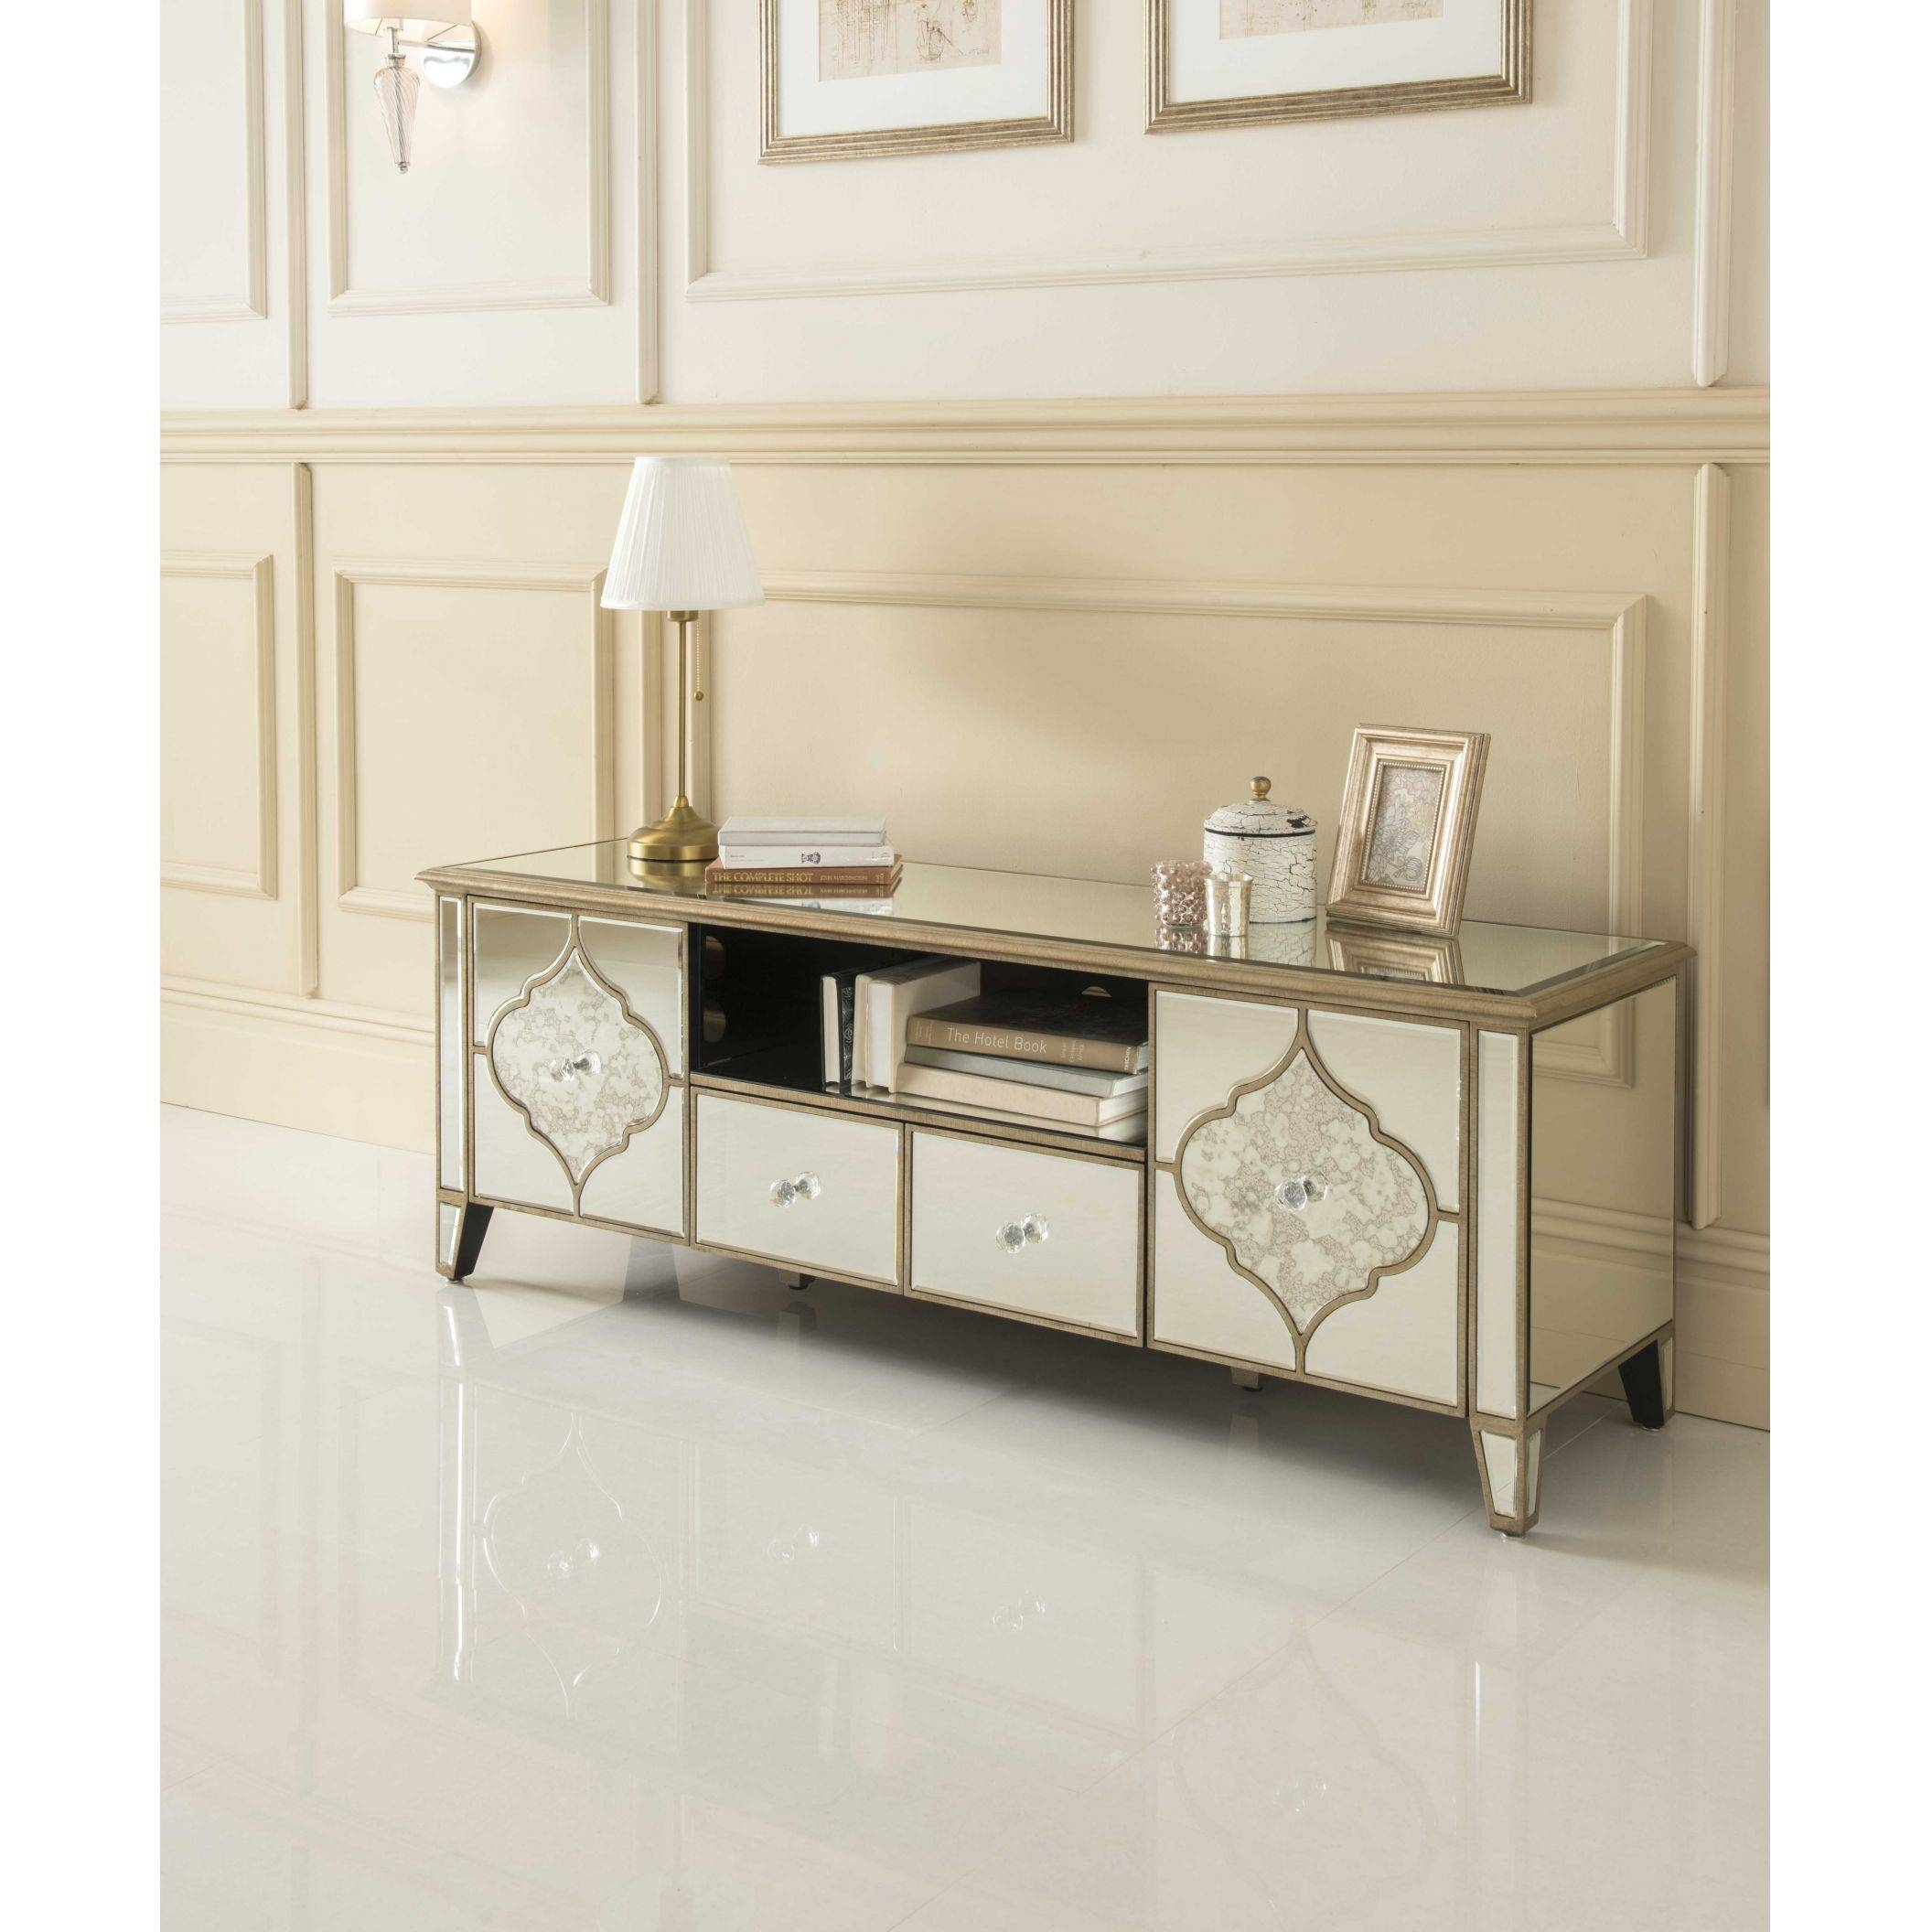 Sassari Mirrored Tv Cabinet | Glass Furniture intended for Mirrored Tv Cabinets (Image 10 of 15)